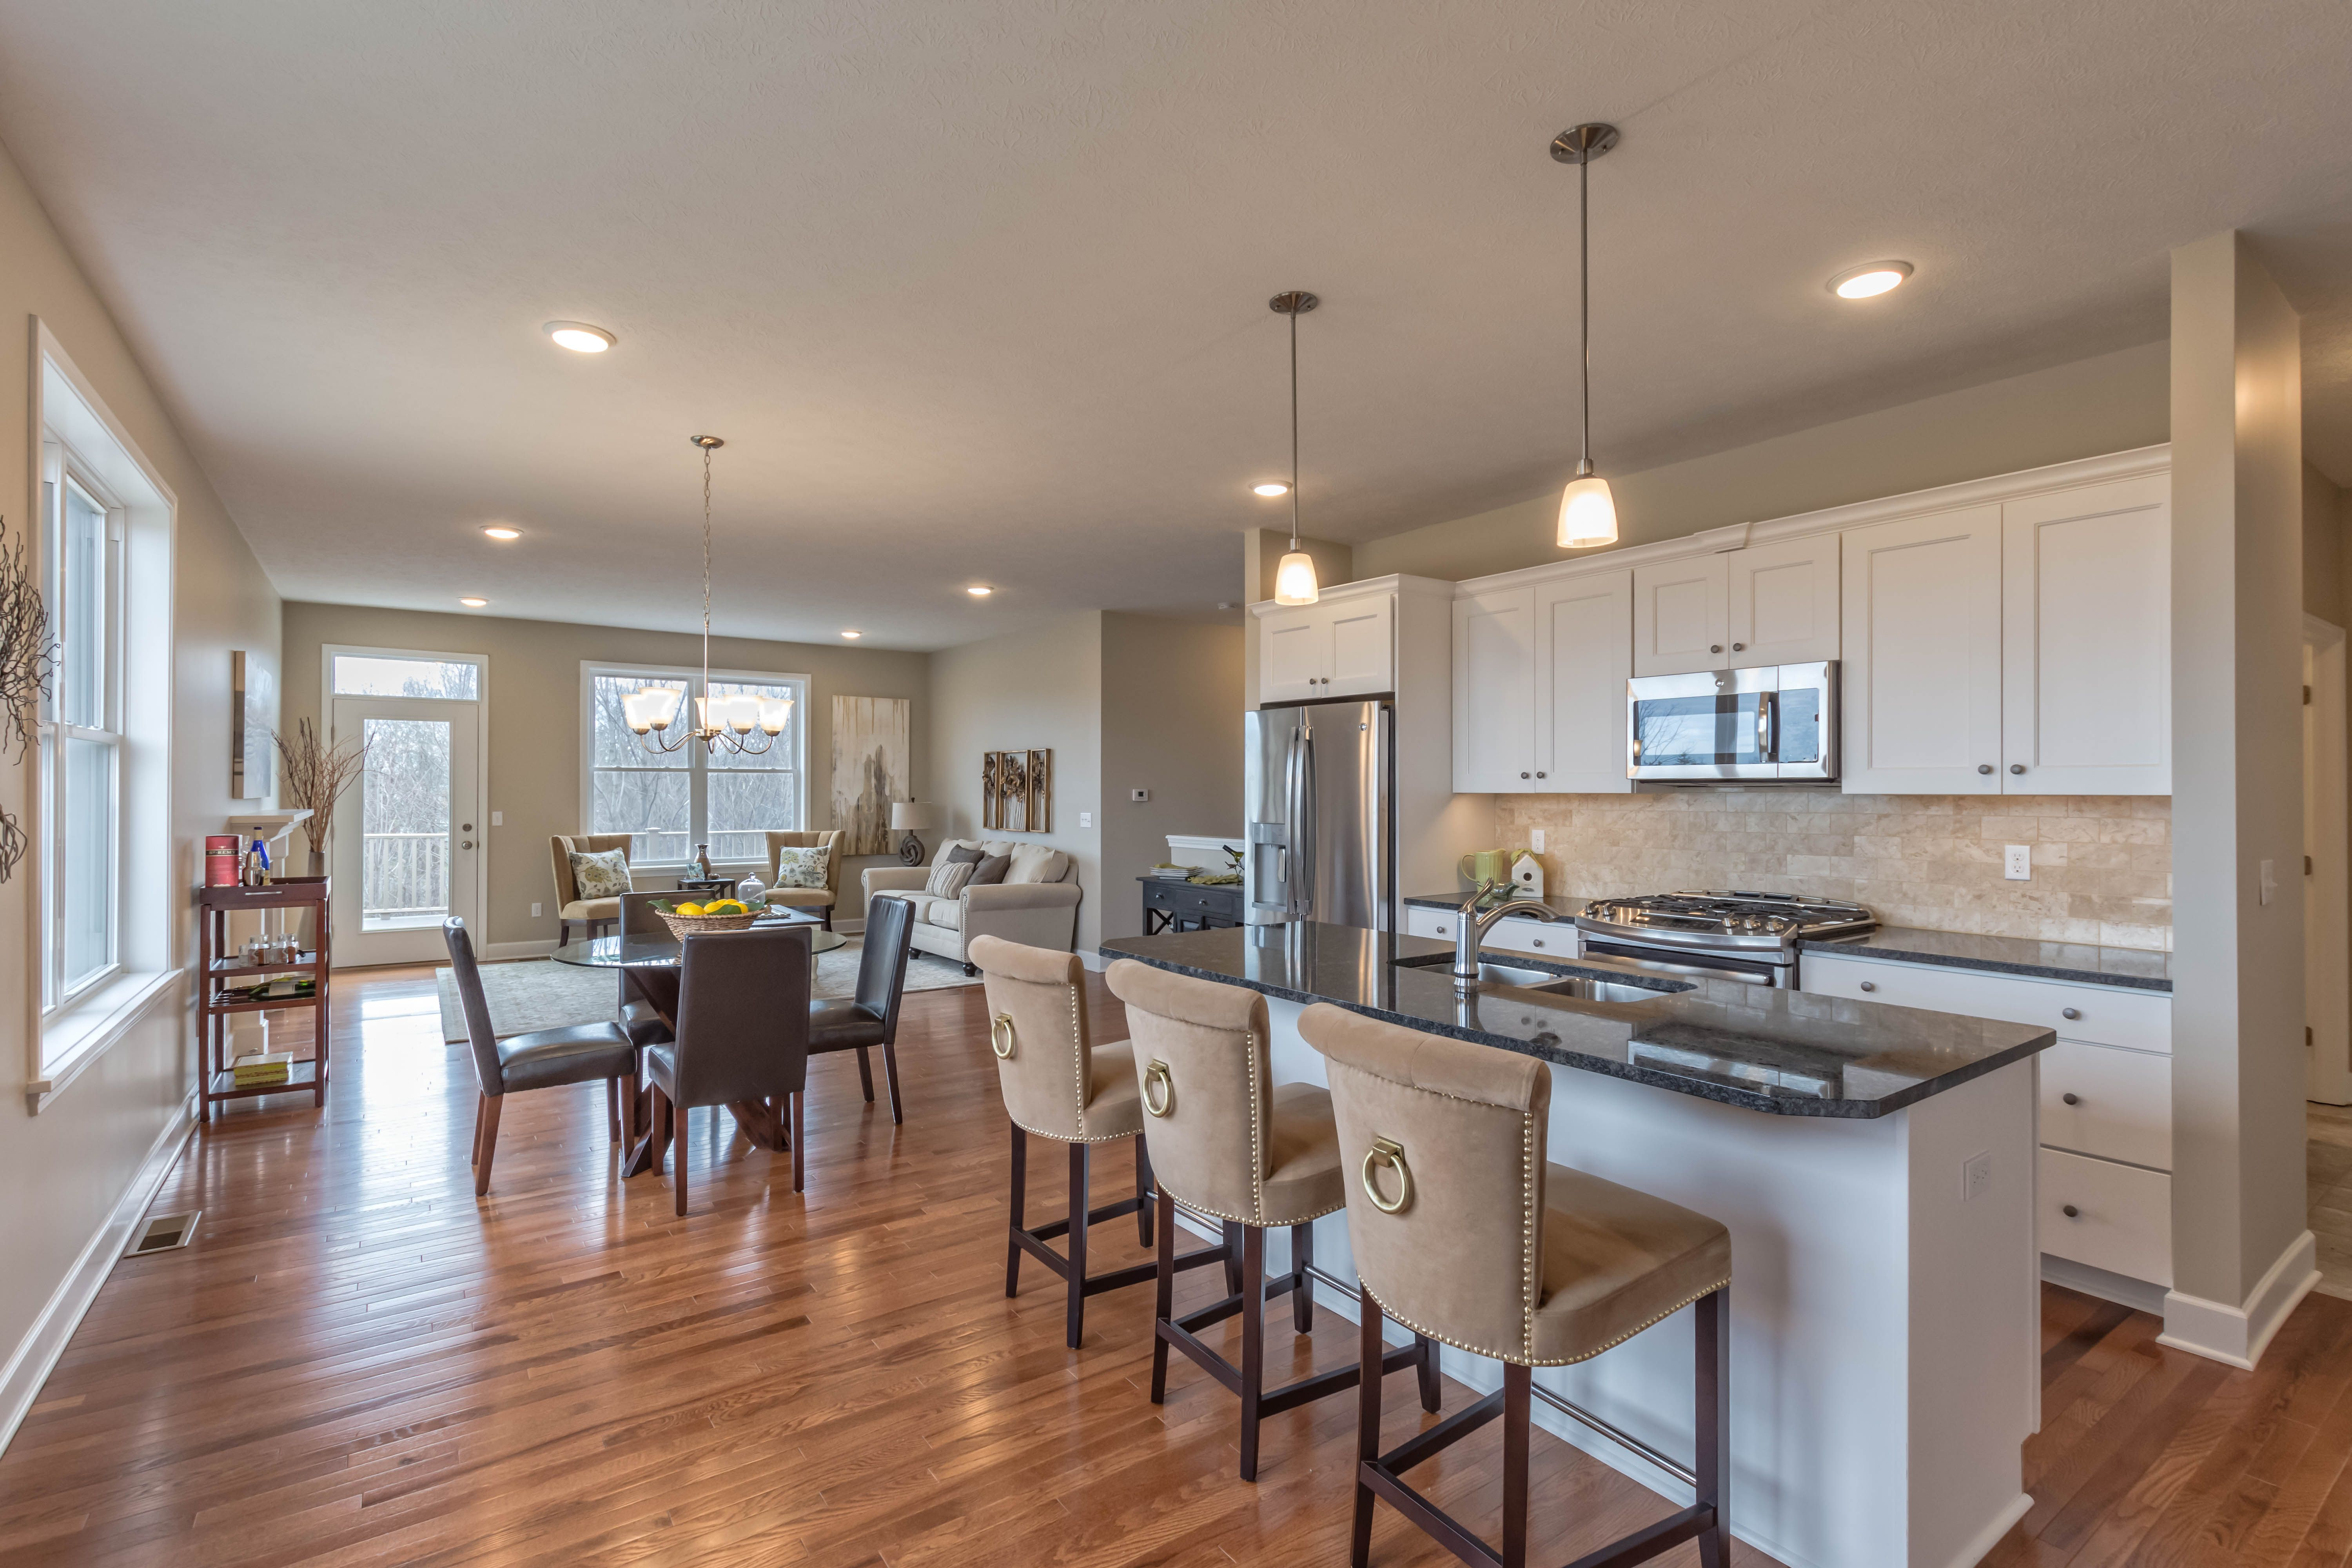 Living Area featured in The Kingston By Riedman Homes in Elmira, NY